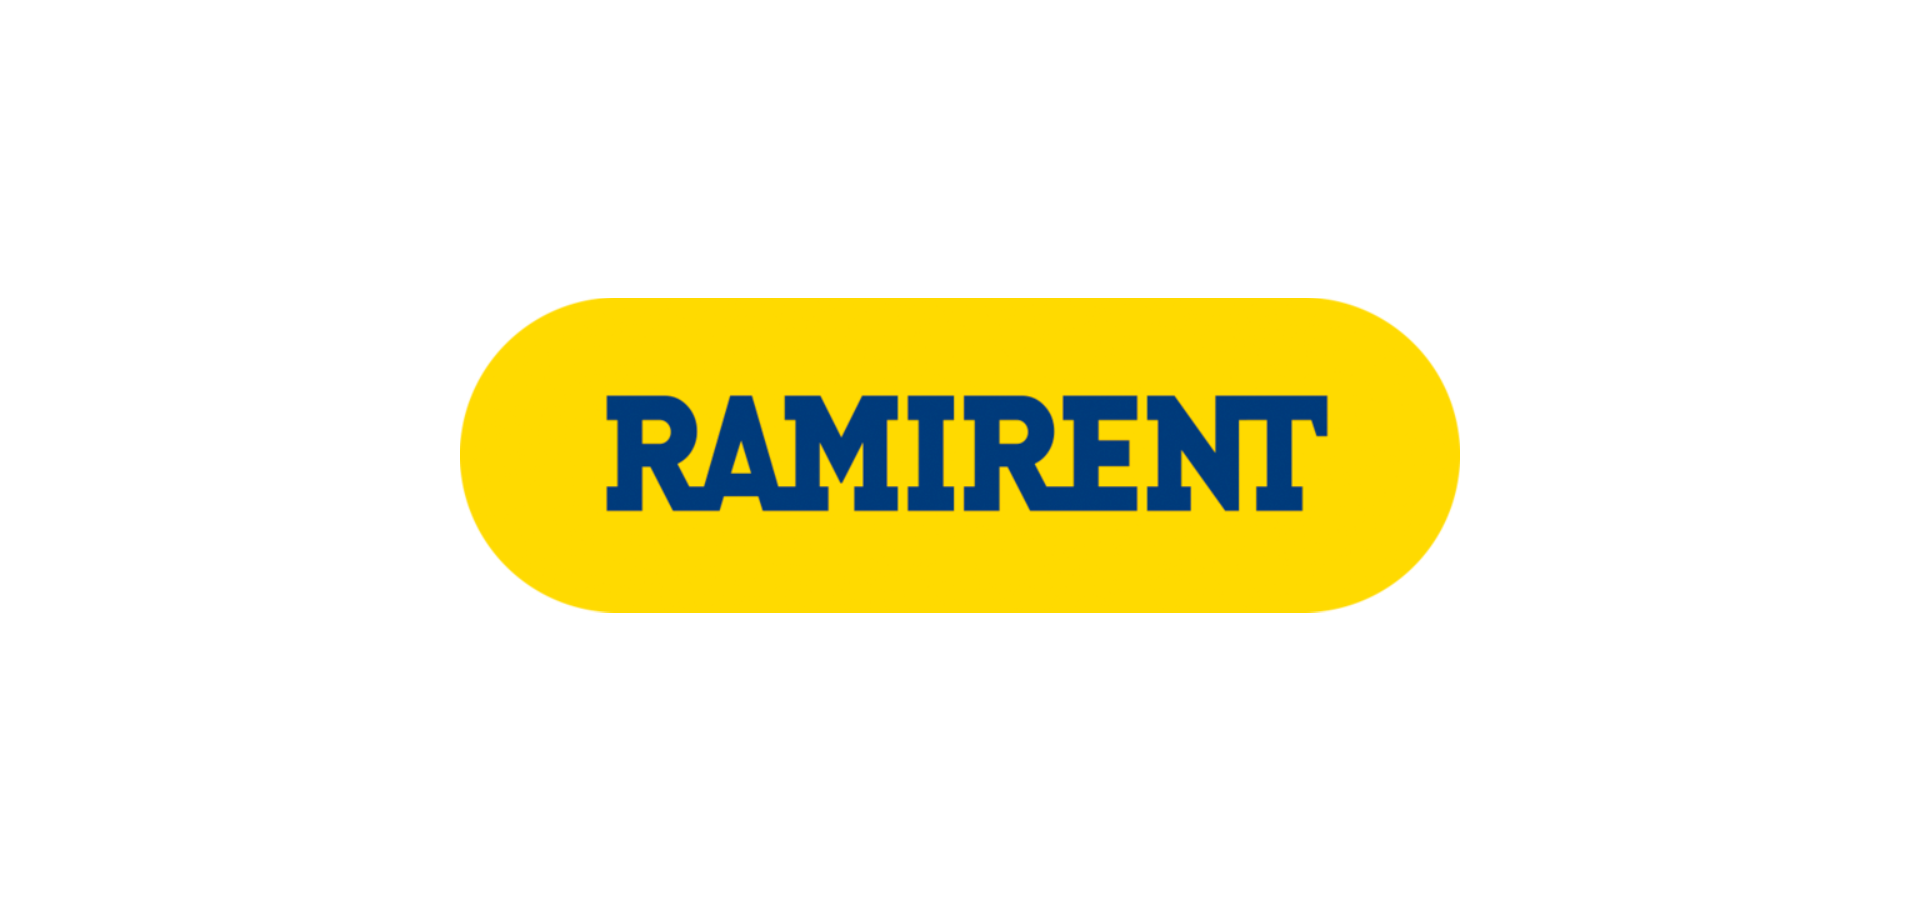 Ramirent logo transparent